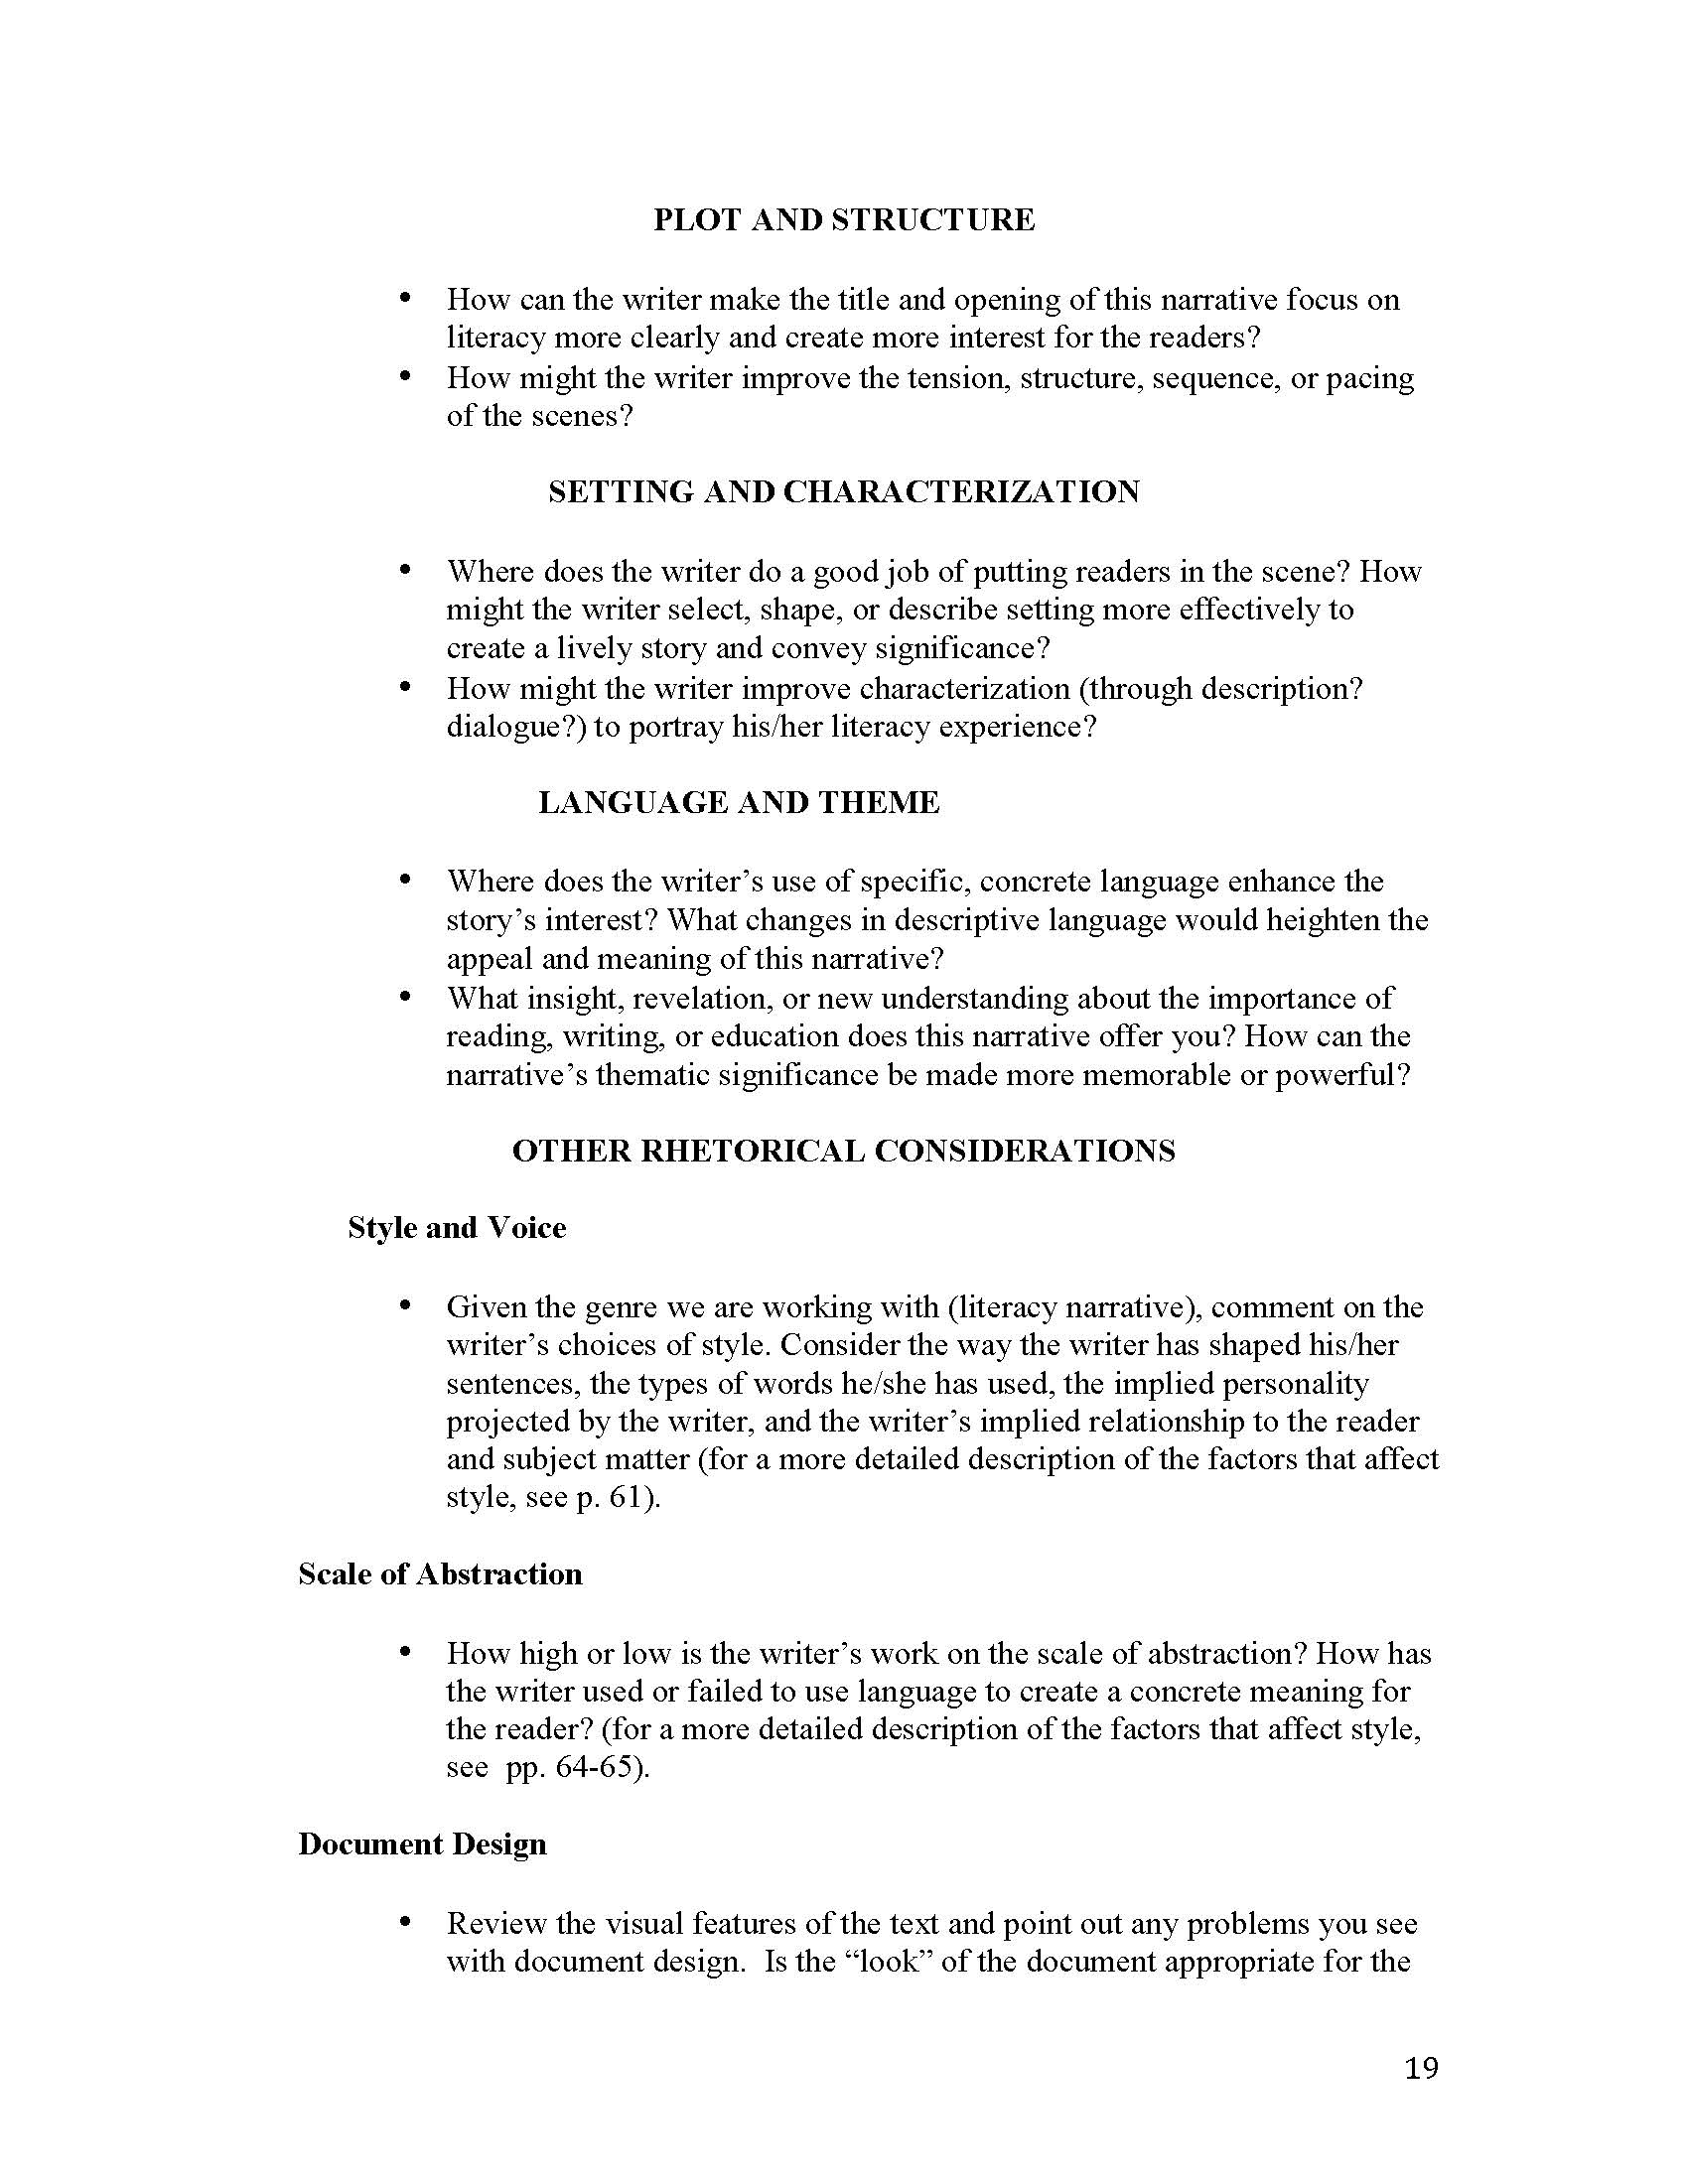 008 Unit 1 Literacy Narrative Instructor Copy Page 19 Essay Example How To Best Examples Conclusion Write Good In Exam Funny Process Full